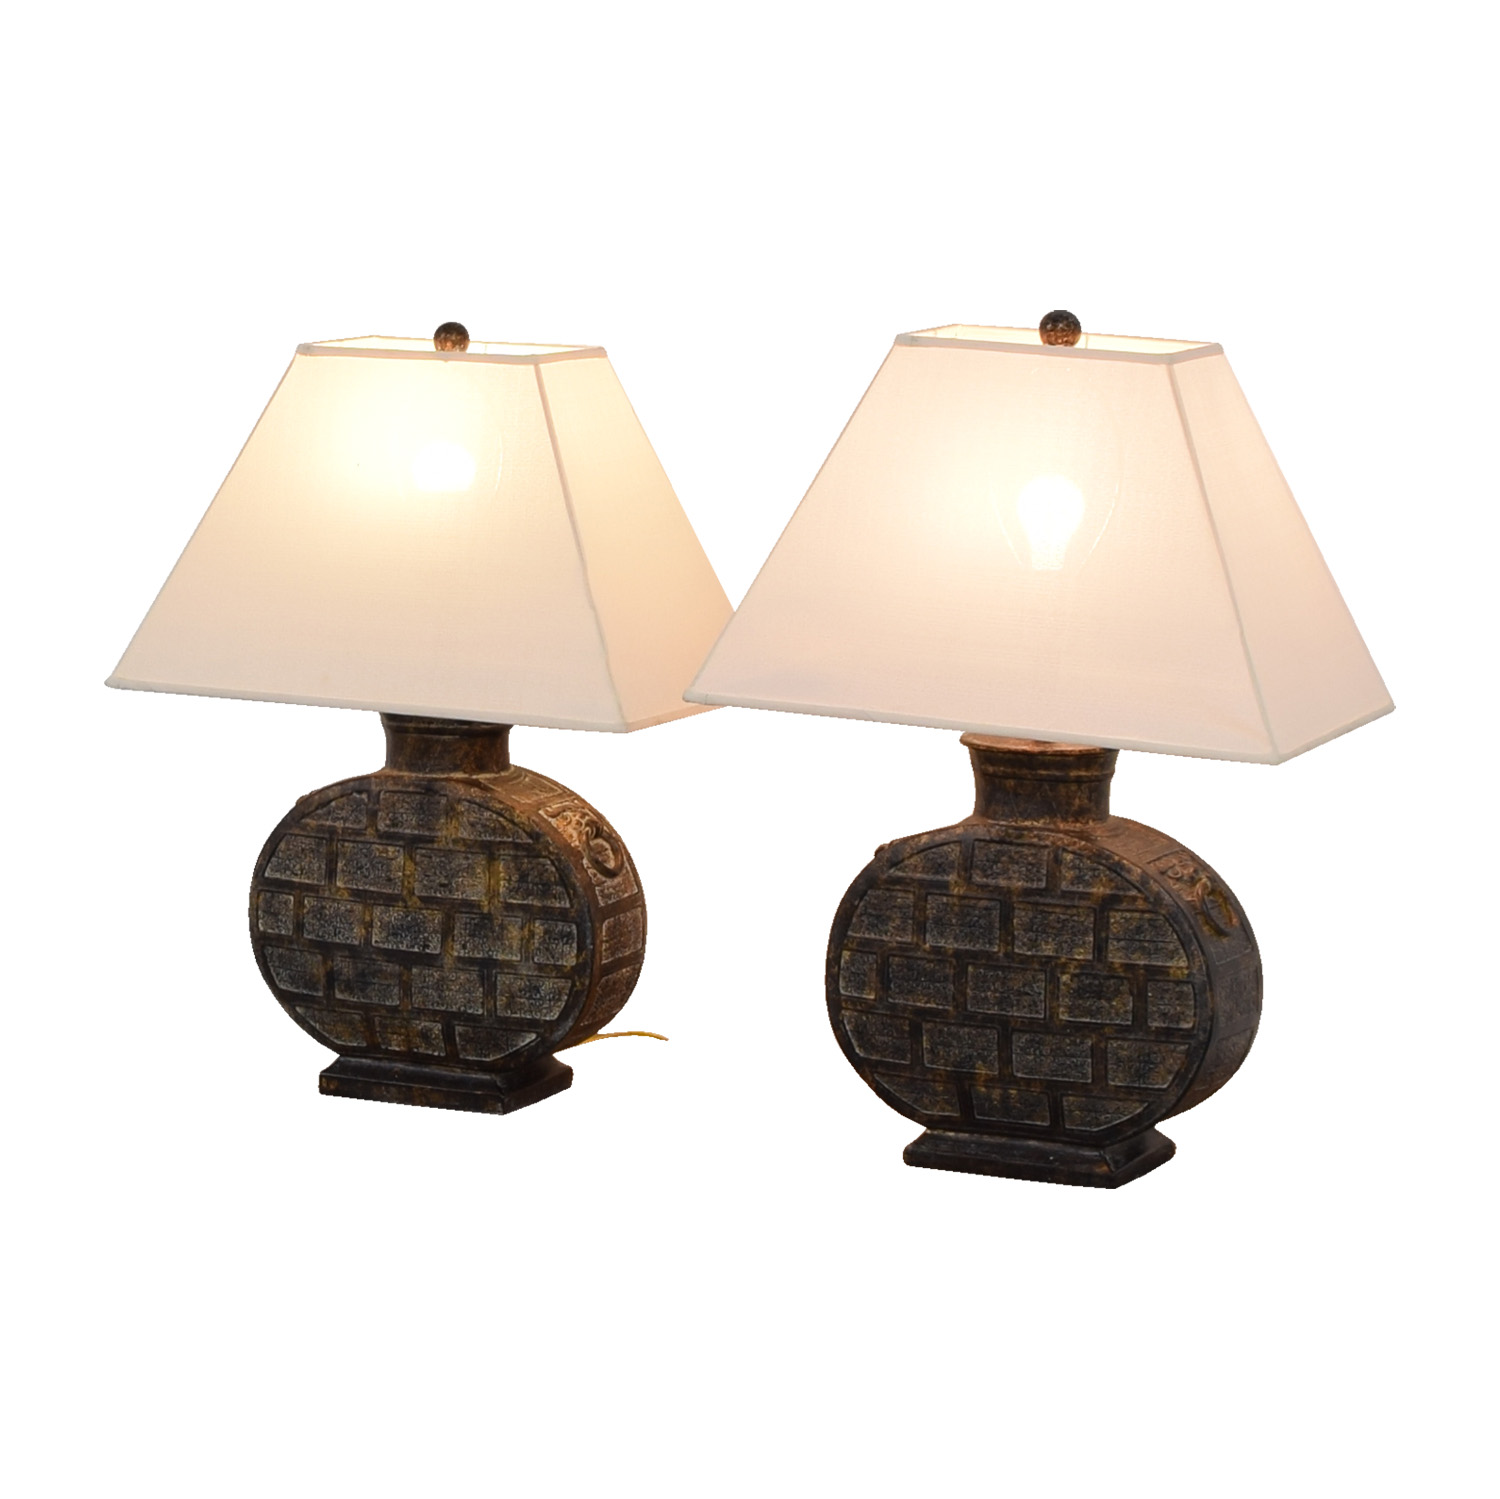 High Quality ... Ethan Allen Ethan Allen Round Table Lamps Discount ...